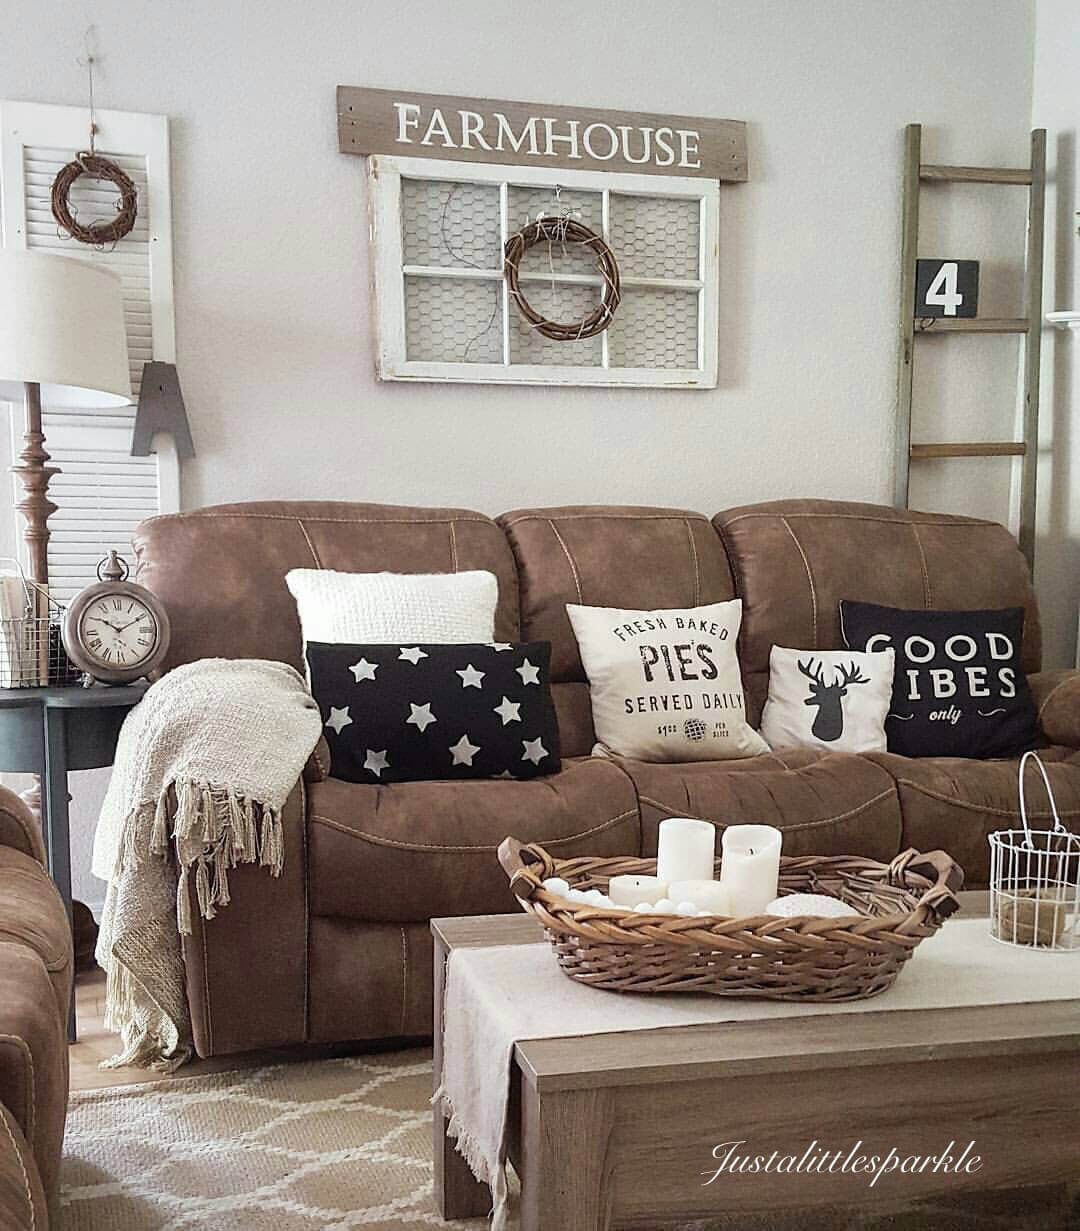 Microfiber Couch Farmhouse Living Room Decor Ideas These Pillows Are So  Cute!!!